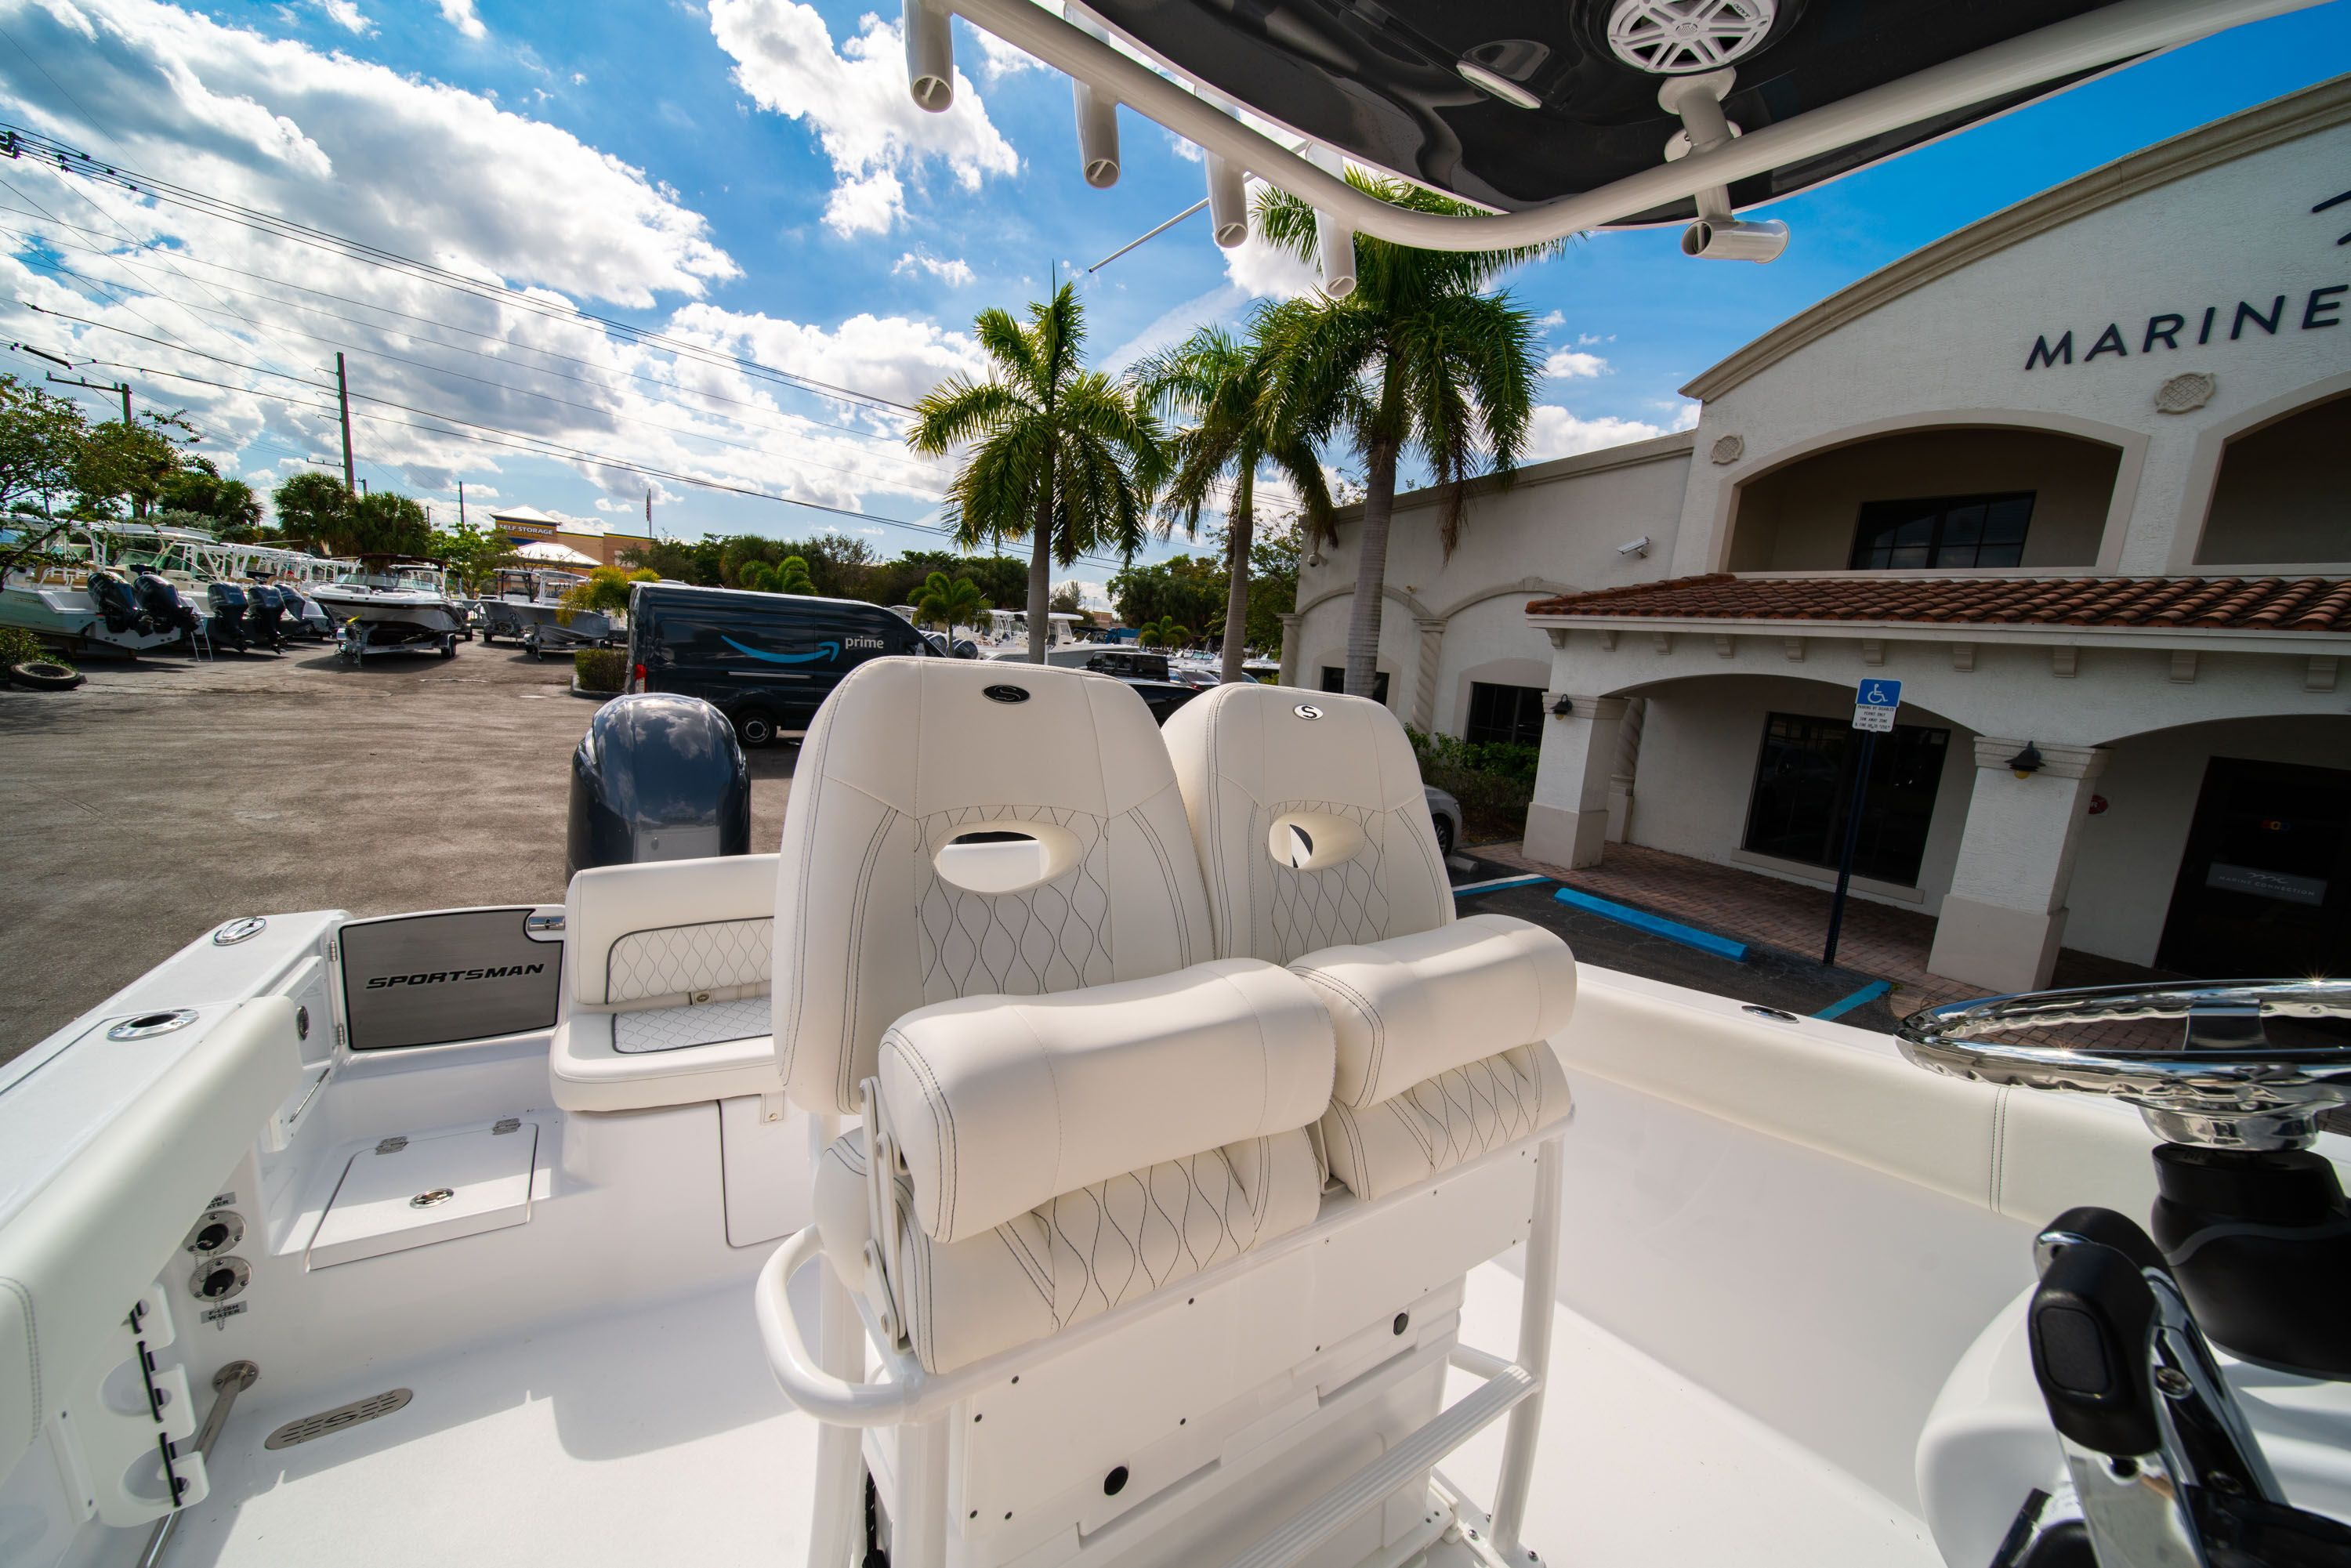 Thumbnail 30 for New 2020 Sportsman Heritage 251 Center Console boat for sale in West Palm Beach, FL